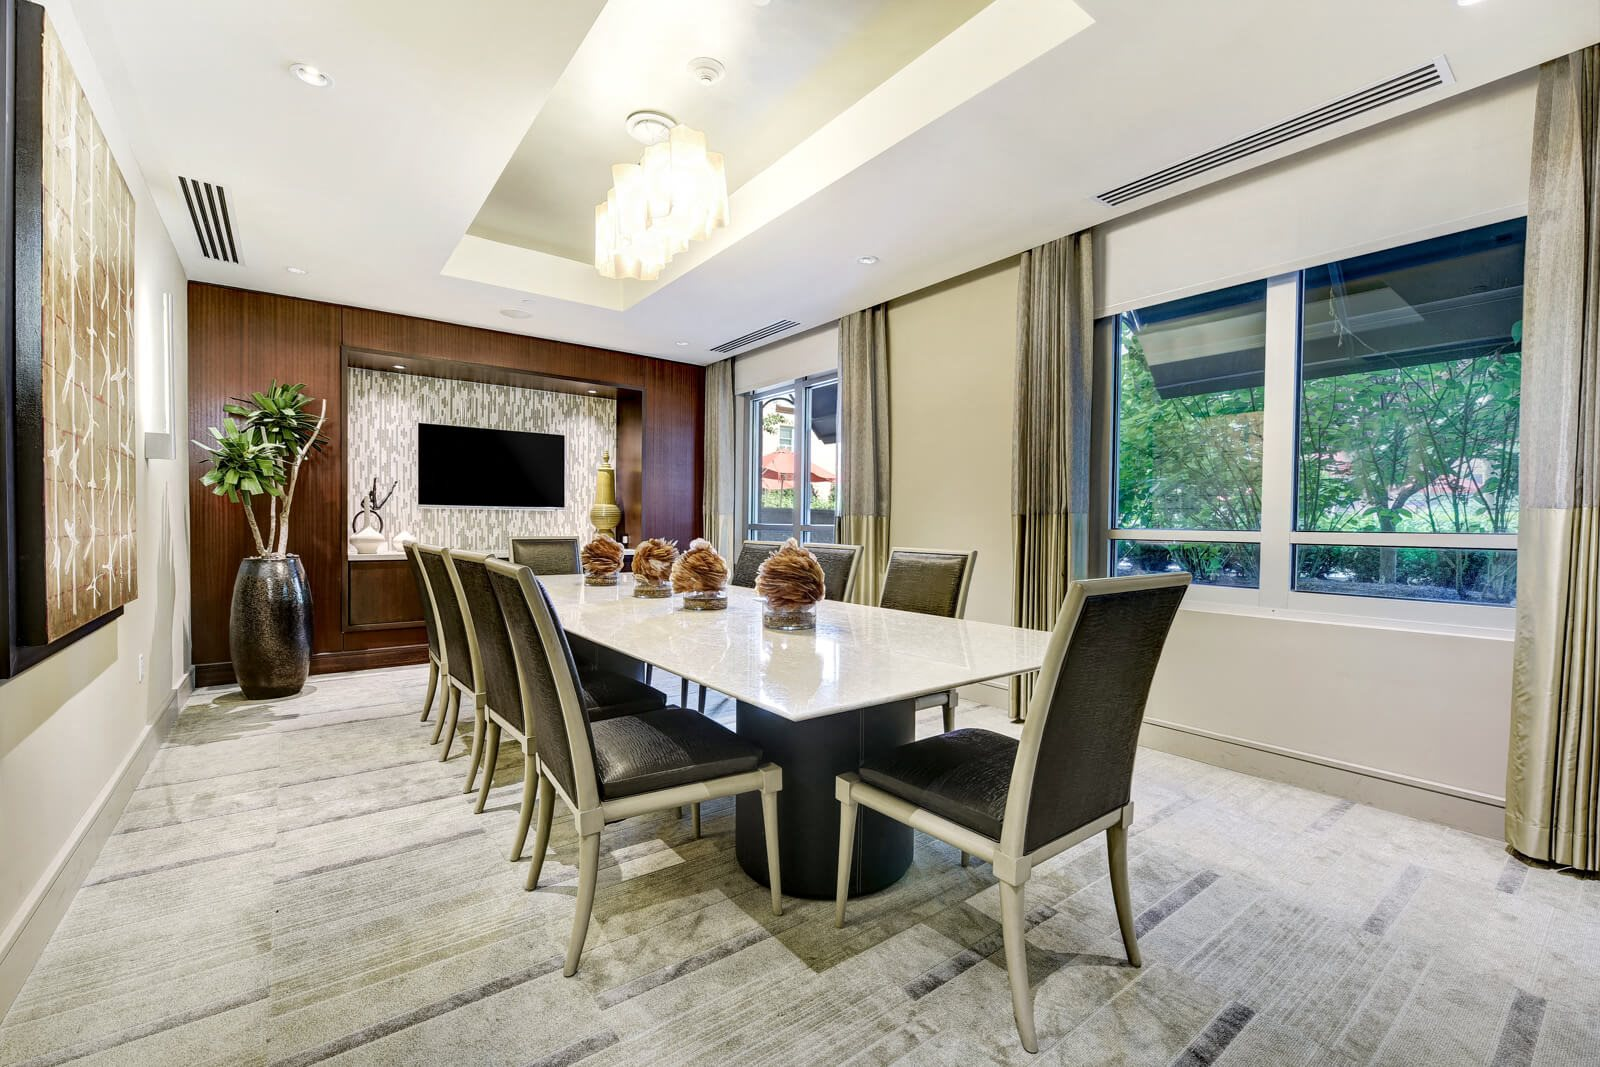 Private Dining Room In Club Suite at Windsor at Cambridge Park, 160 Cambridge Park Drive, MA